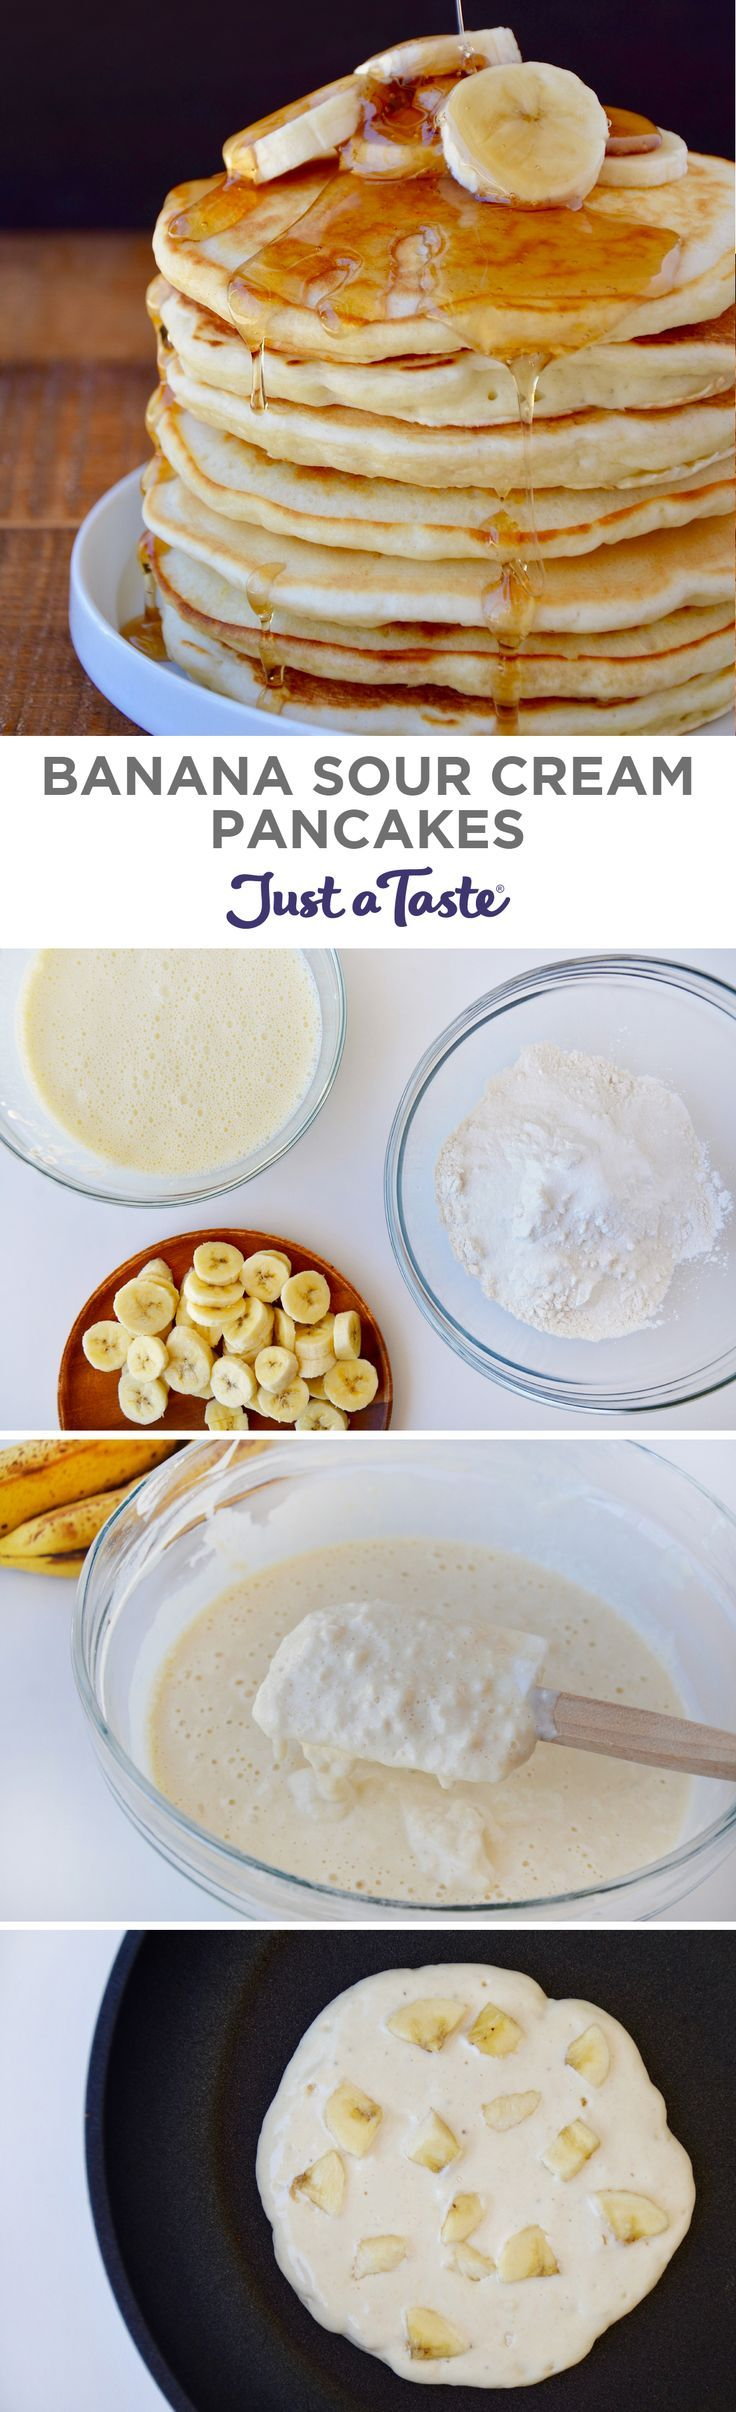 Banana Sour Cream Pancakes Recipe From Http Justataste Com Breakfast Pancakes Sour Cream Pancakes Breakfast Brunch Recipes Breakfast Recipes Easy